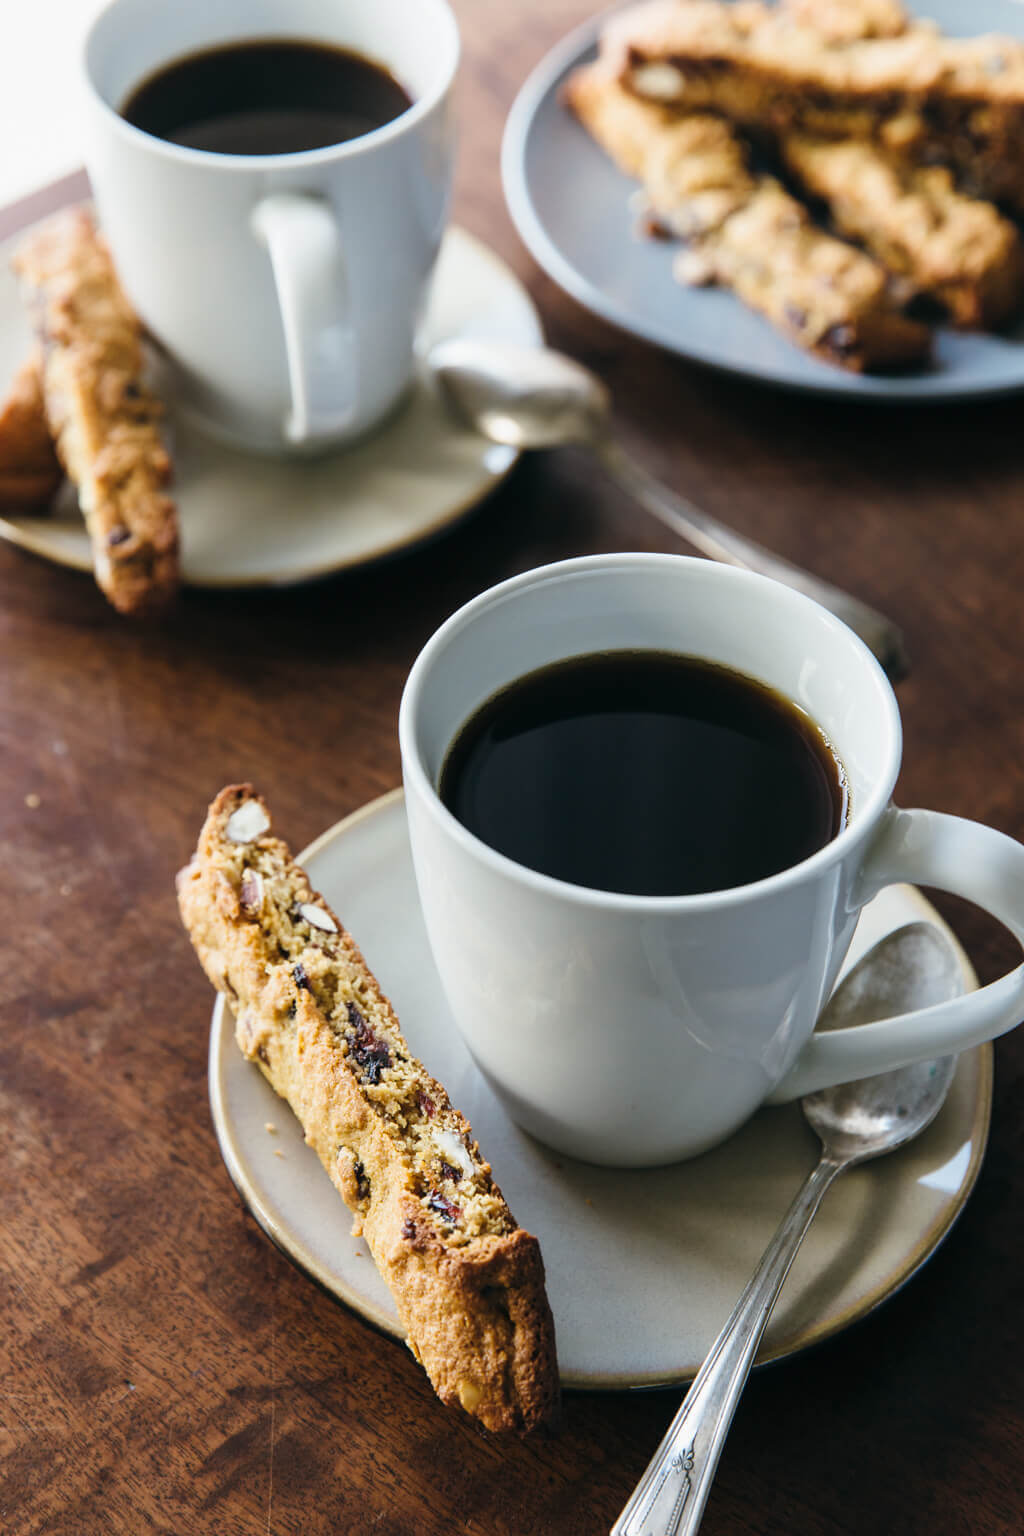 Cranberry almond biscotti. Gluten-free, grain-free and paleo.